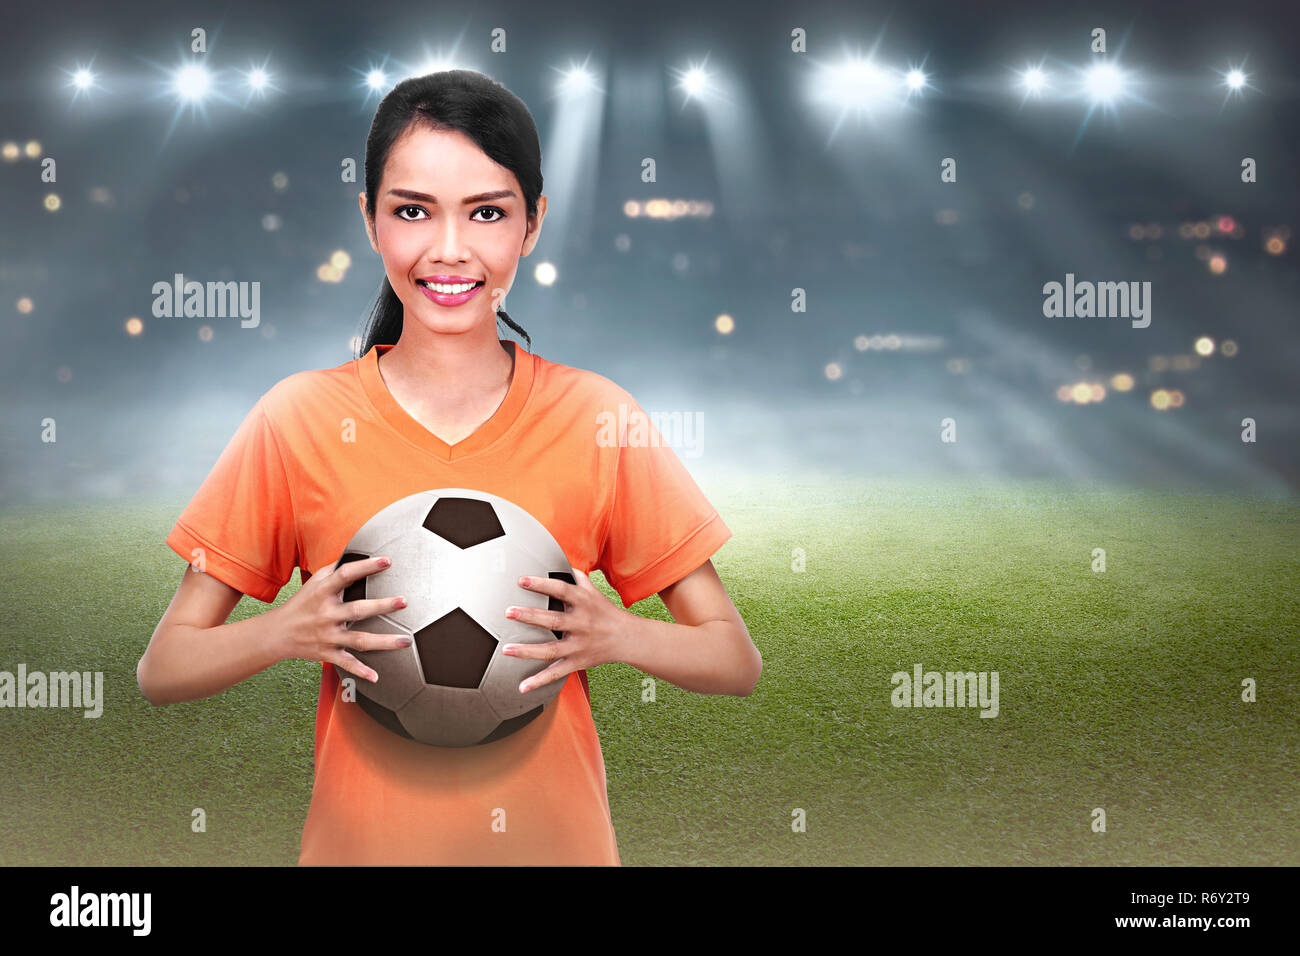 Remarkable, asian girls playing football are certainly